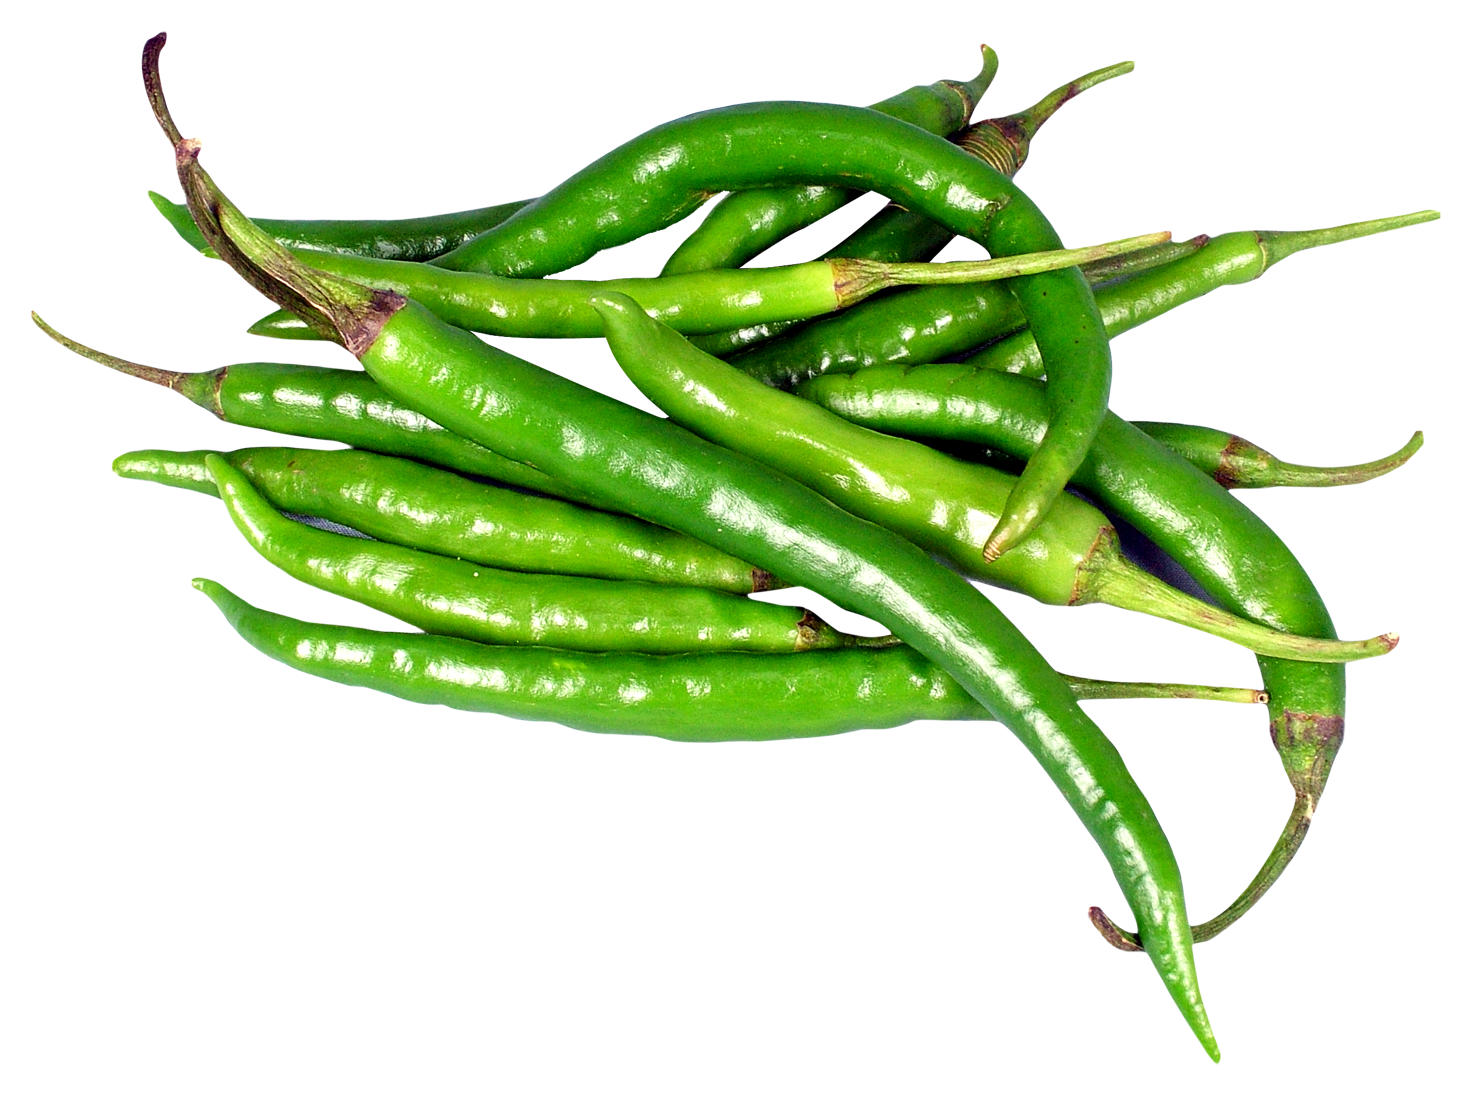 Green chile png. Chili peppers image purepng